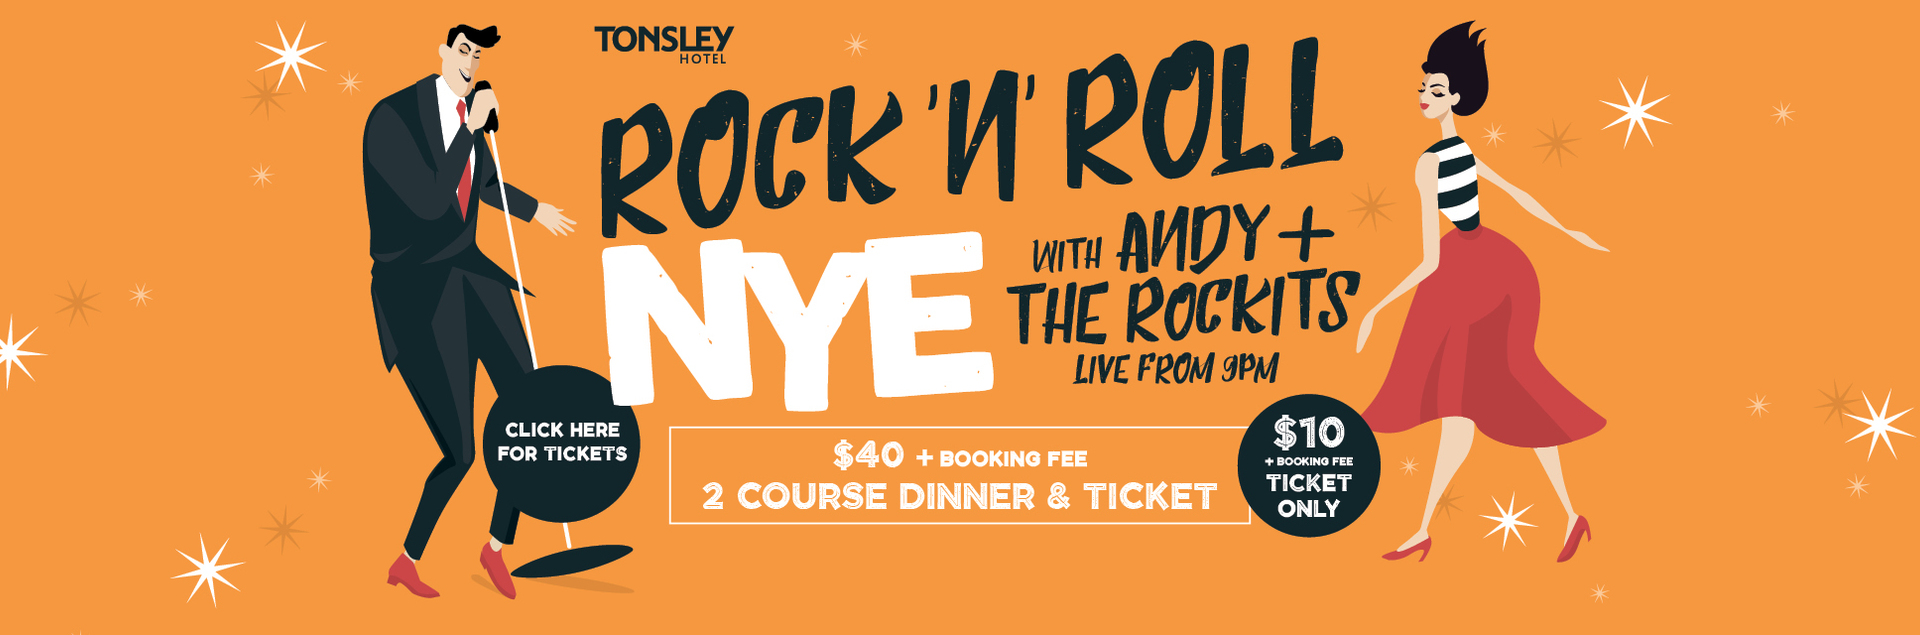 Rock n Roll NYE-slider.jpg